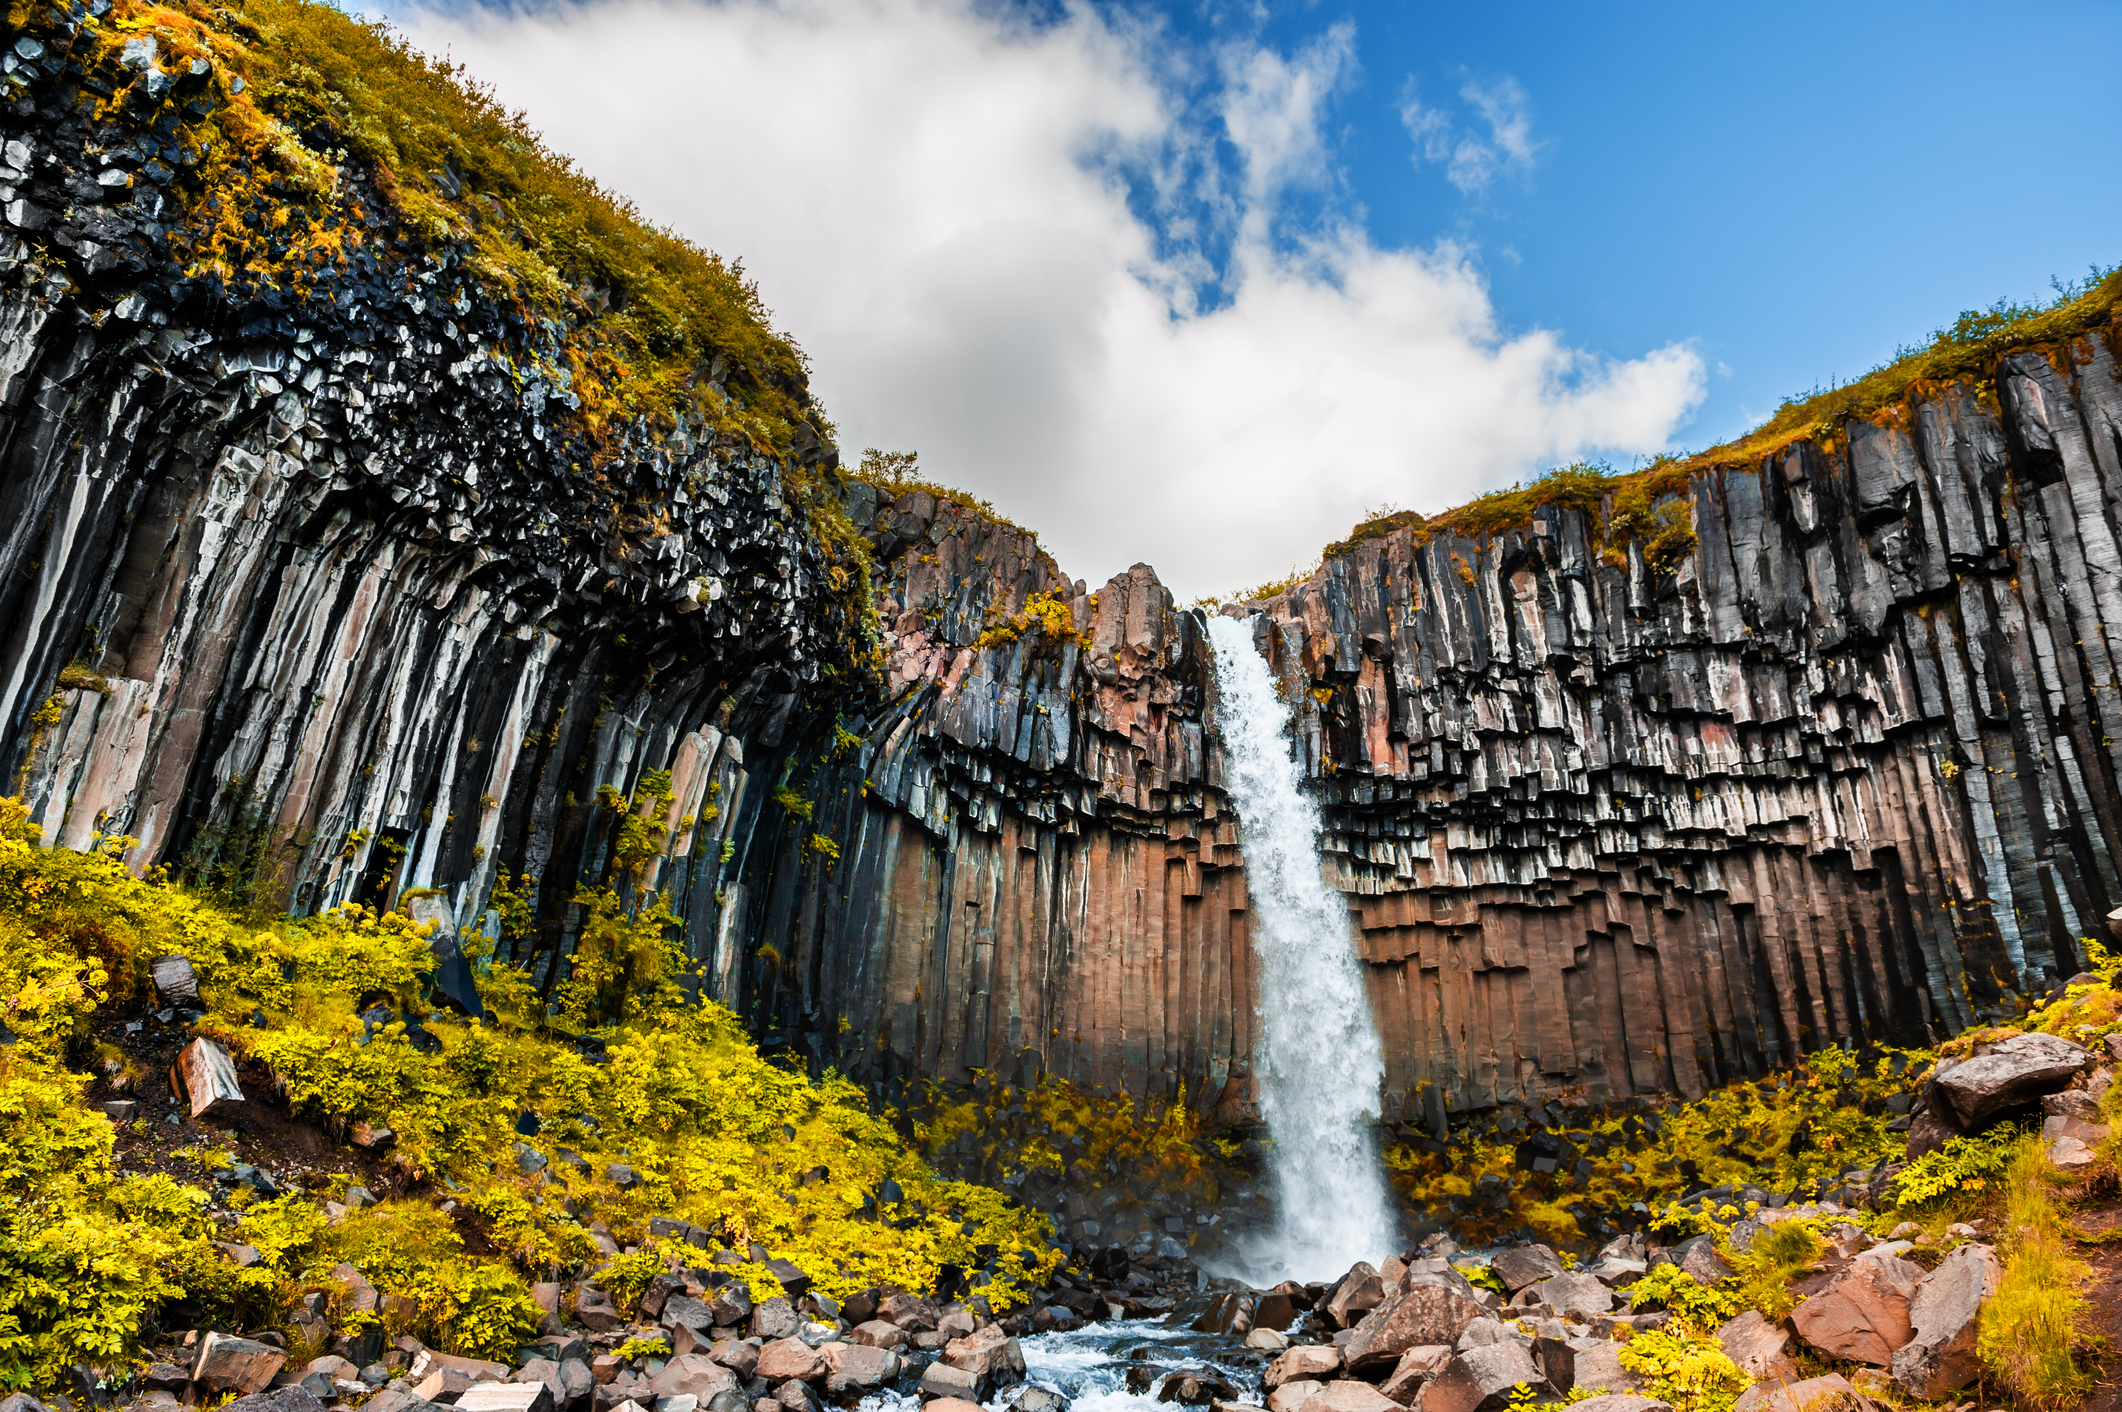 Svartifoss waterfall in Skaftafell national park, southern Iceland. Beautiful autumn landscape